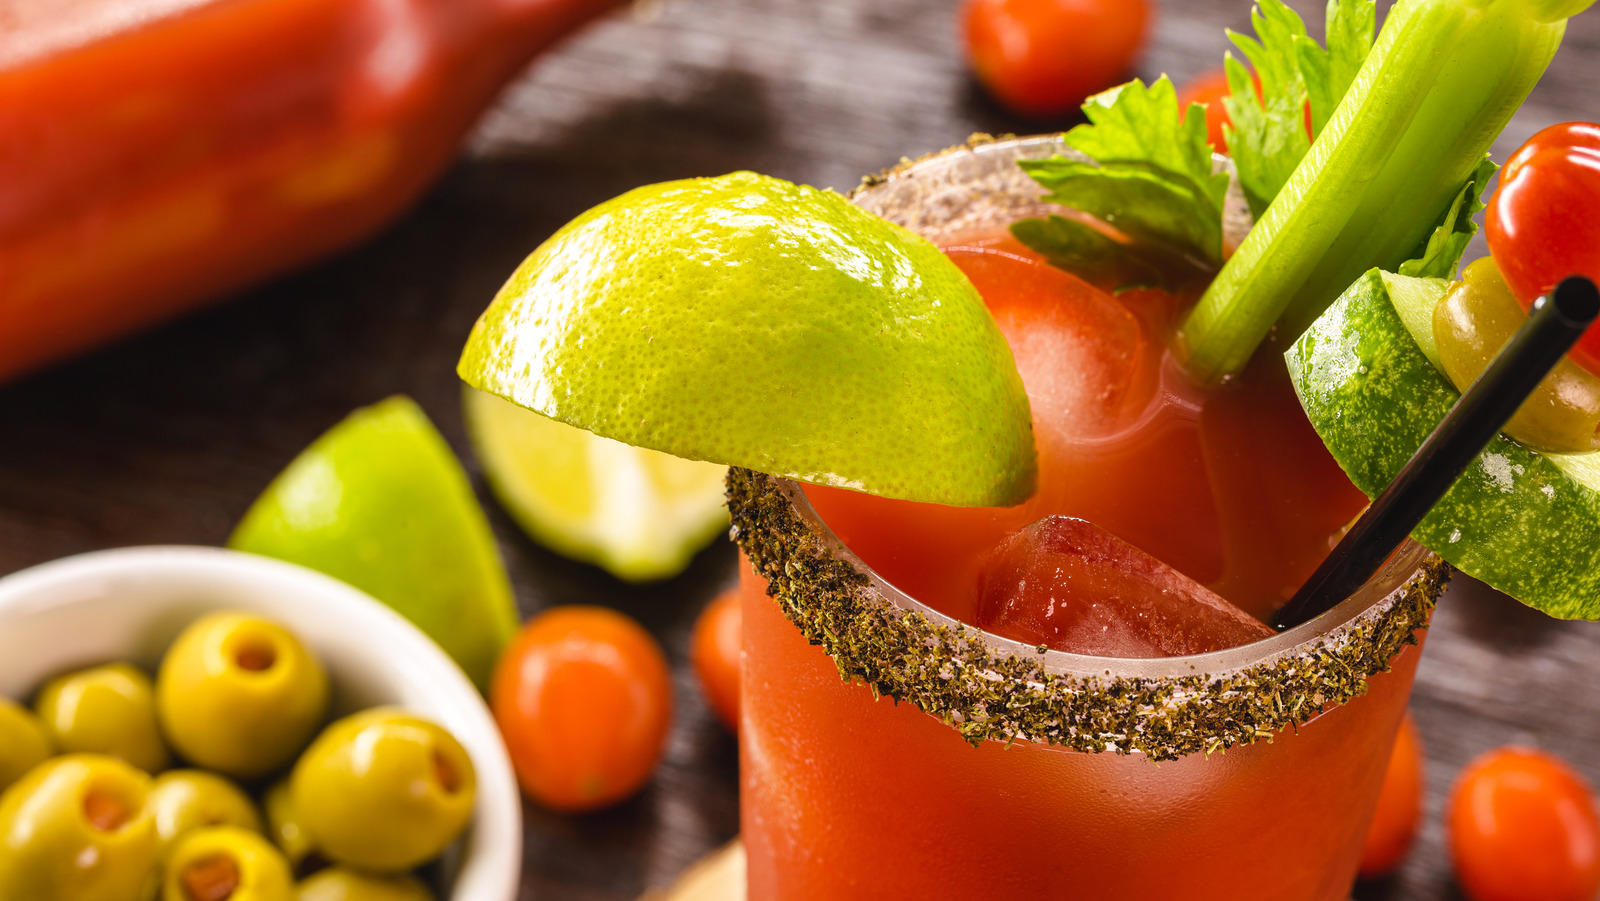 Bloody Marys can help with hangovers